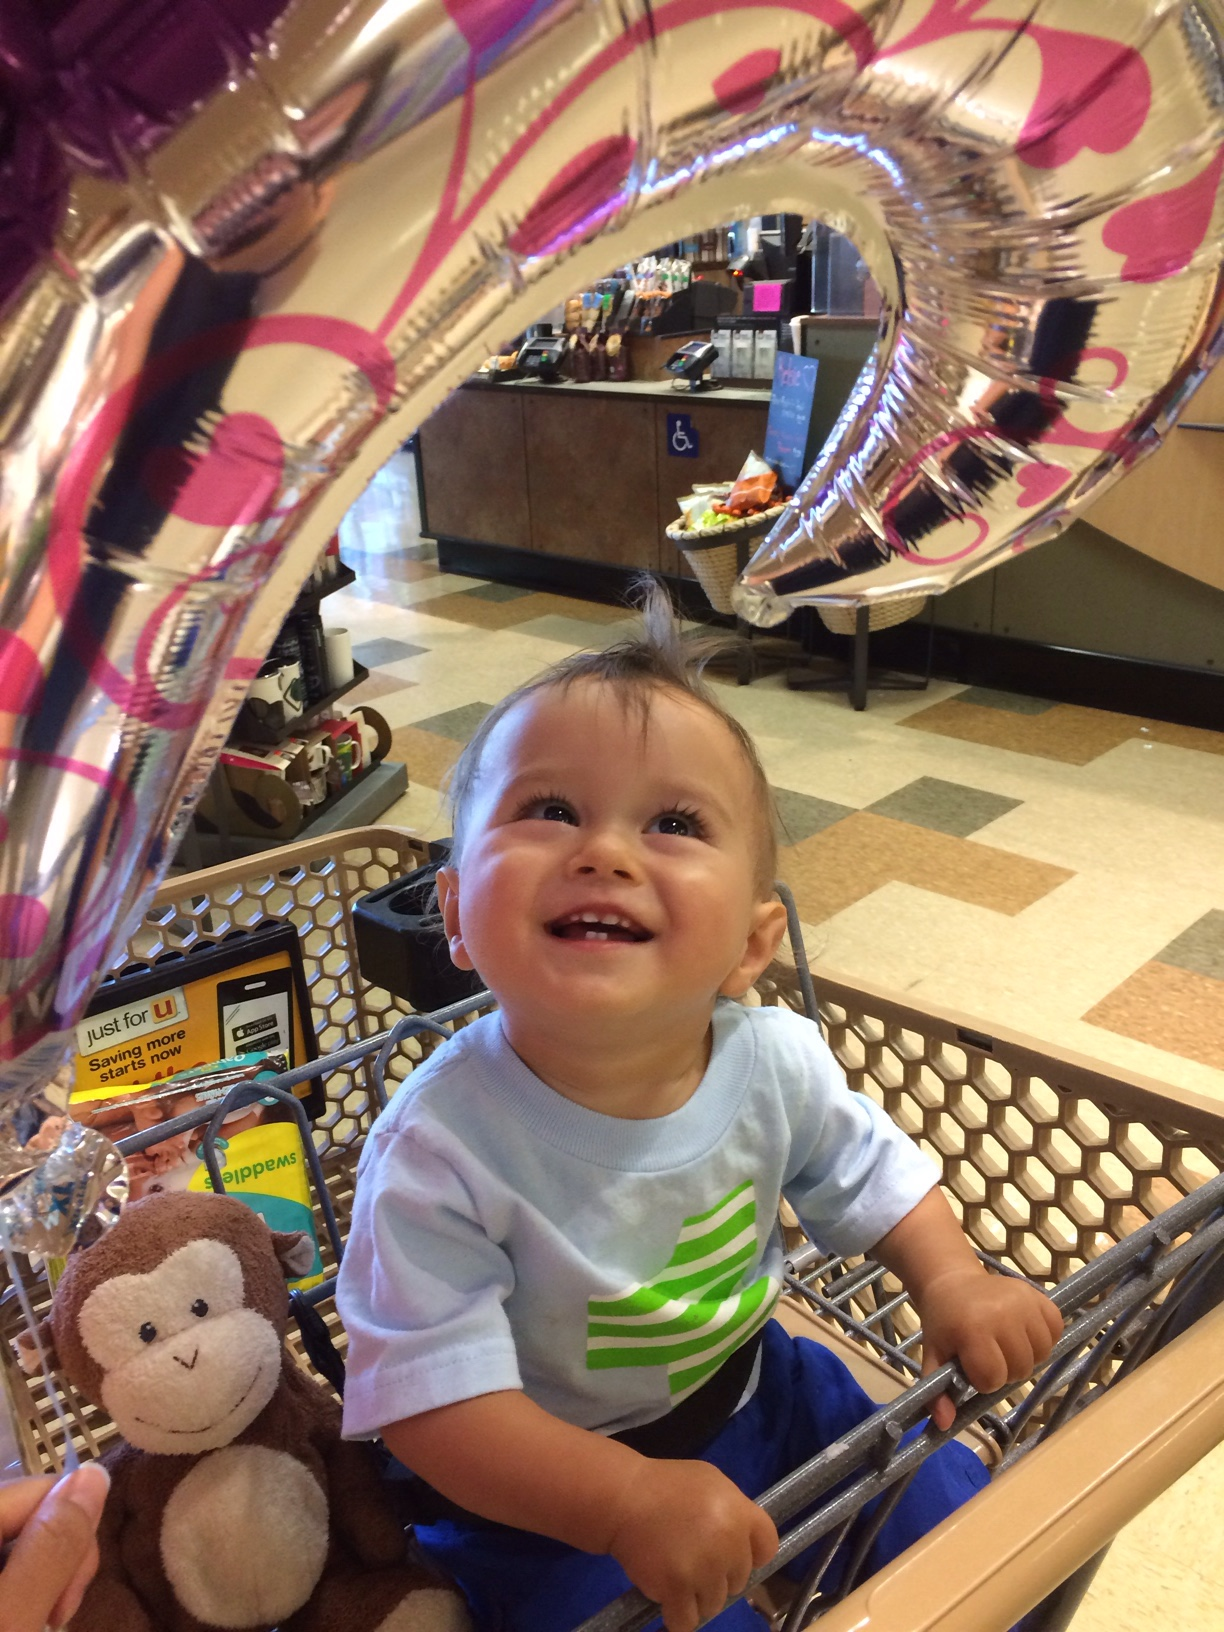 Baby boy o smiling at balloon